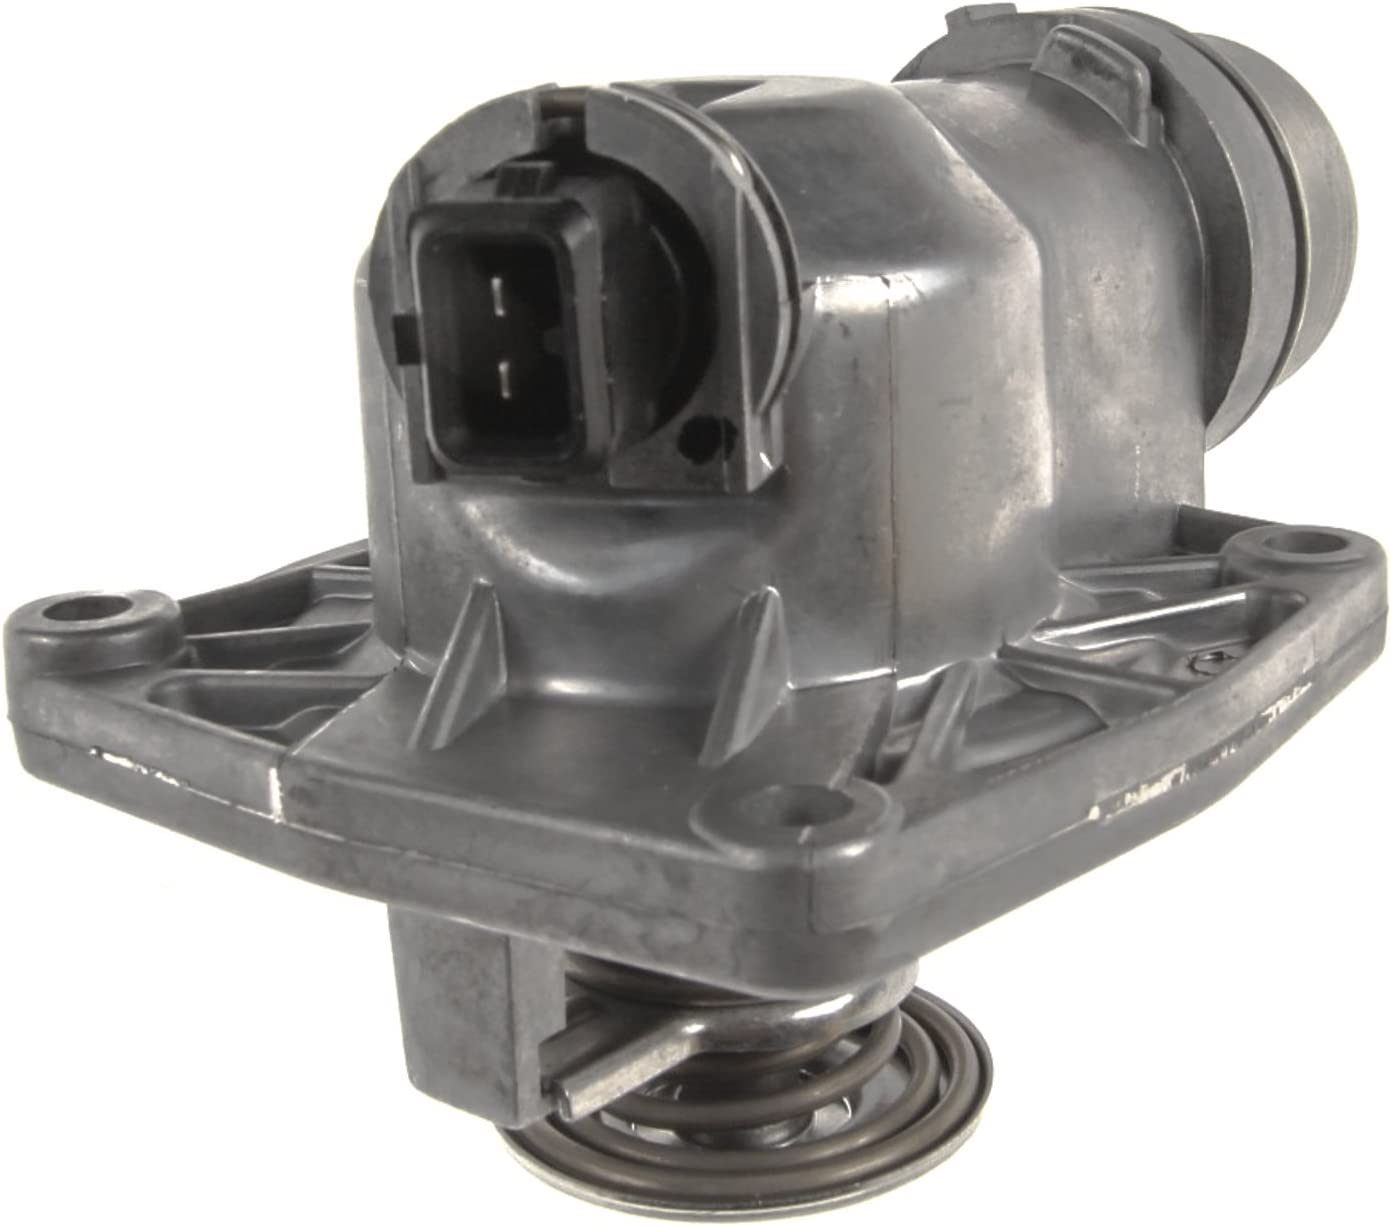 MAHLE Direct store TM16105 Max 66% OFF Map-Controlled Thermostat